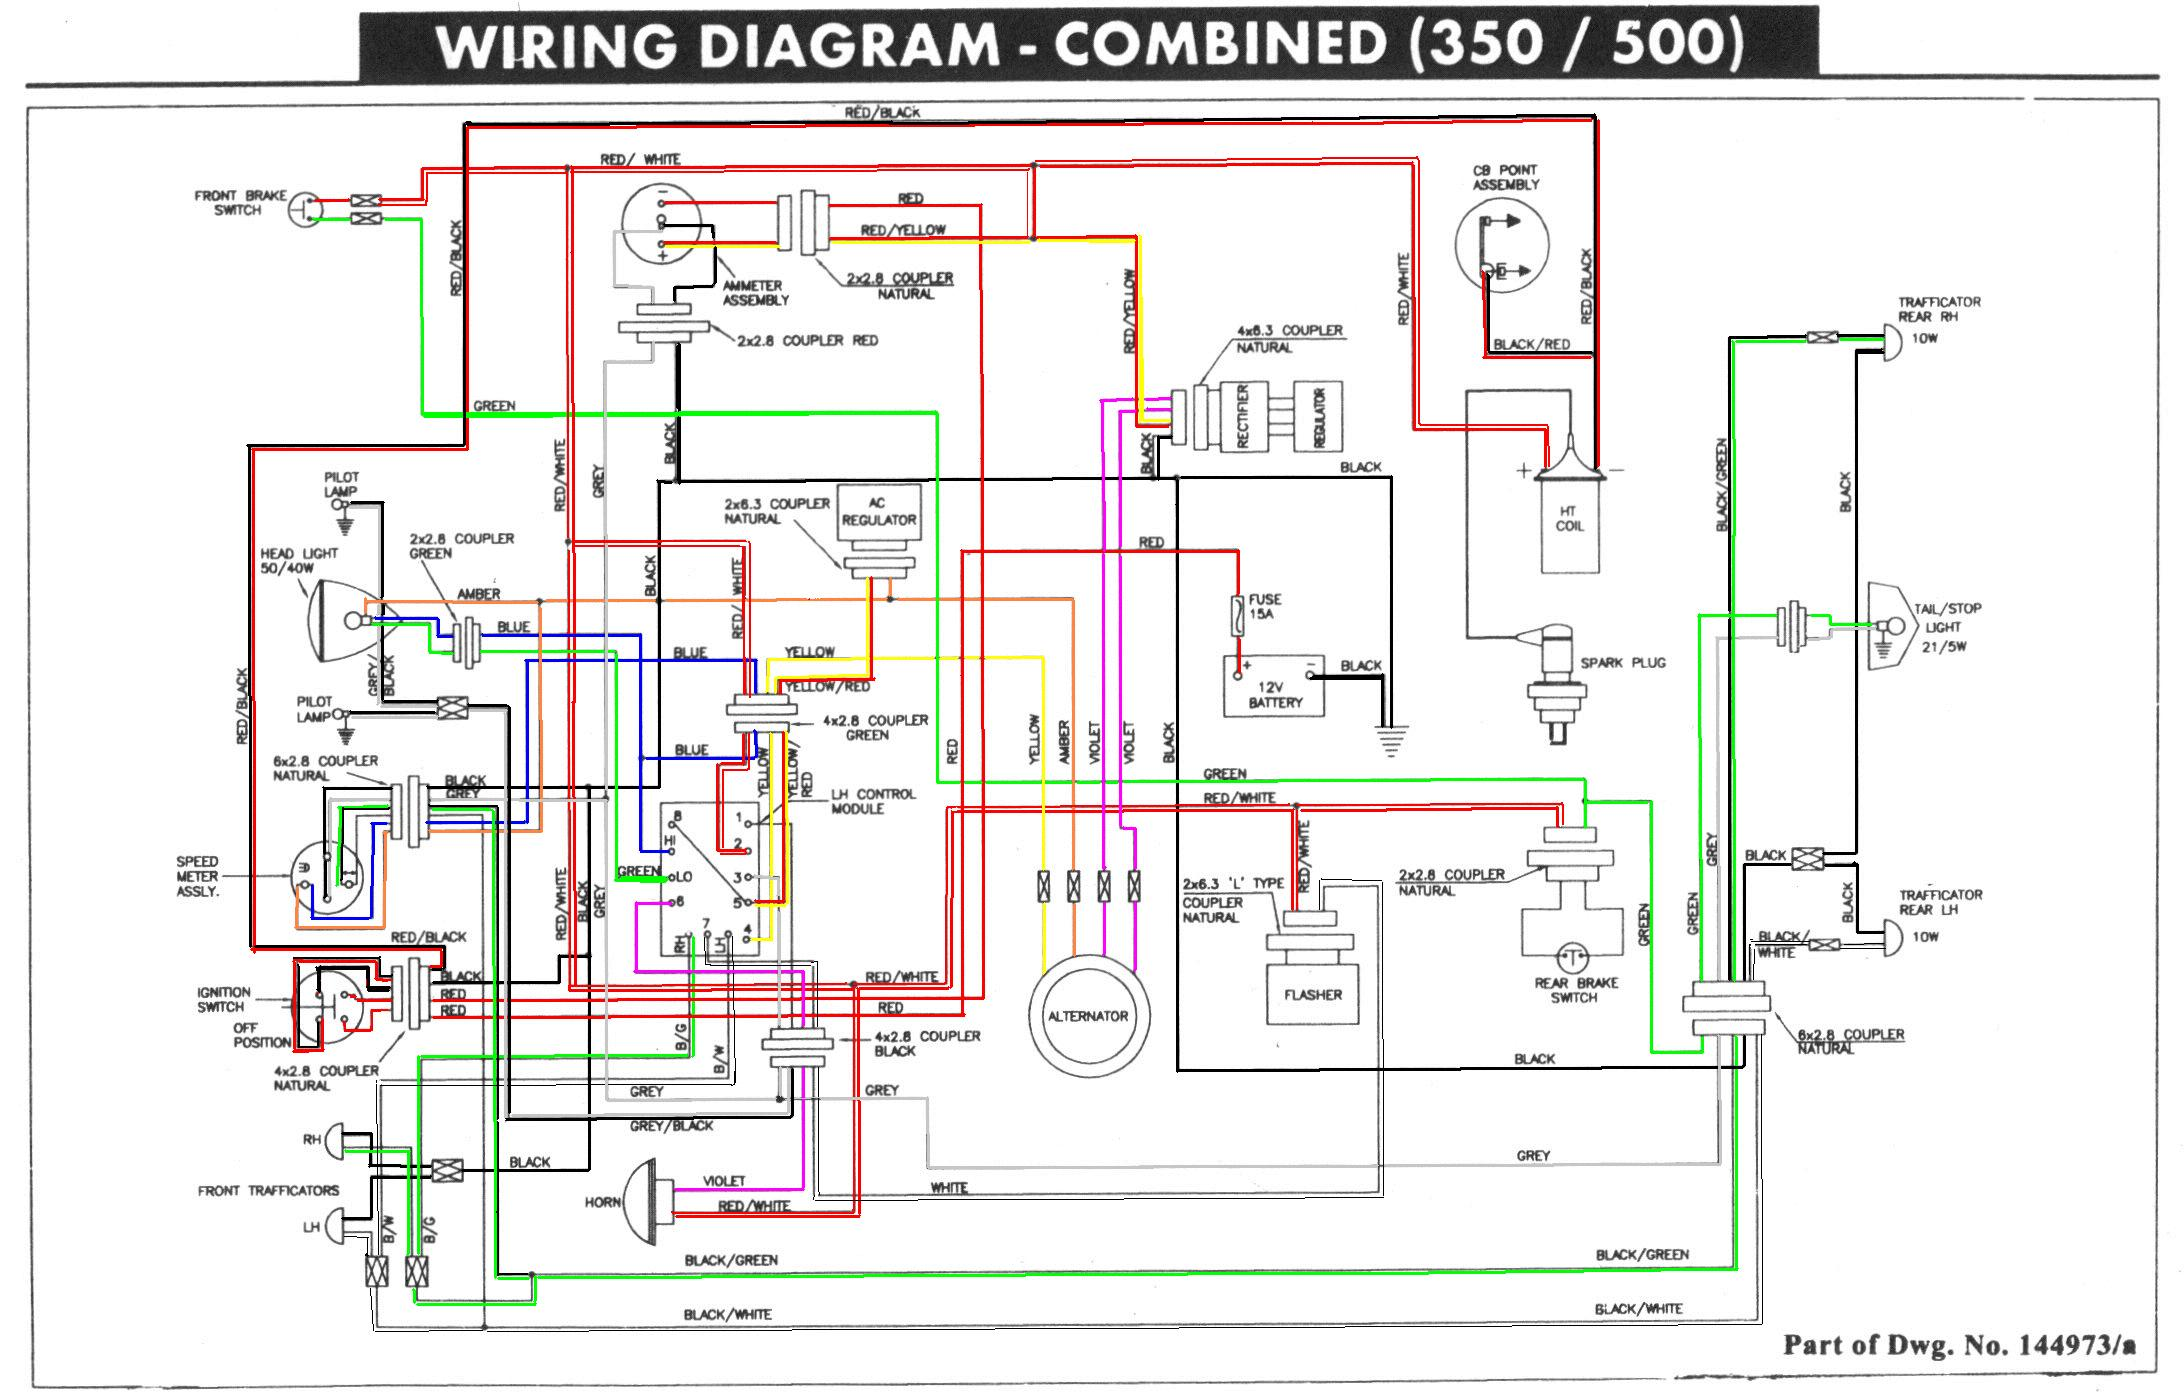 99-1/2 KS 500 wiring diagram?Unofficial Royal Enfield Community Forum